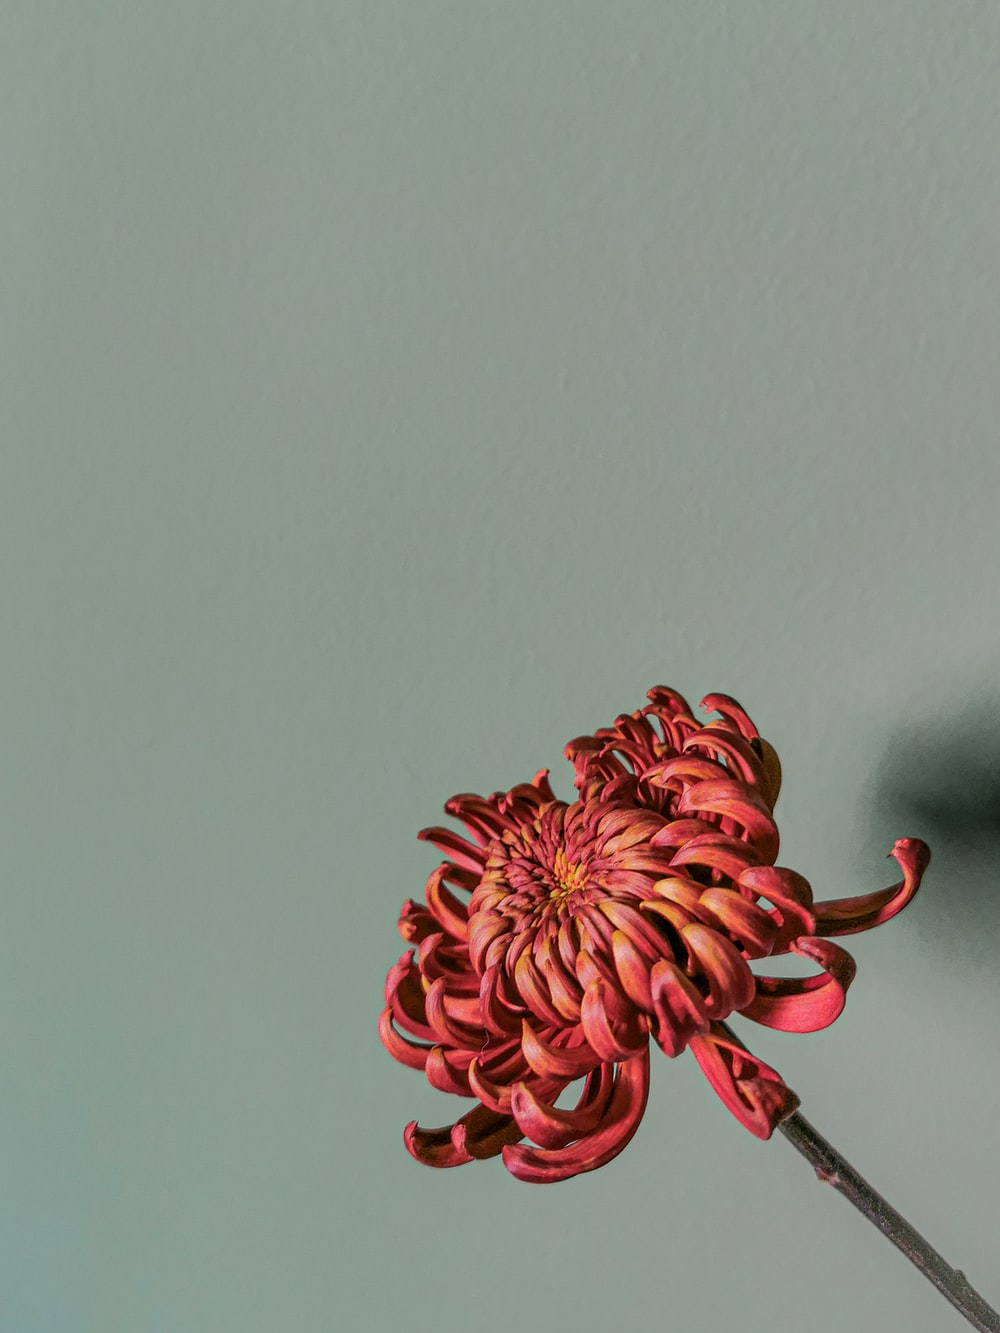 red flower on gray surface